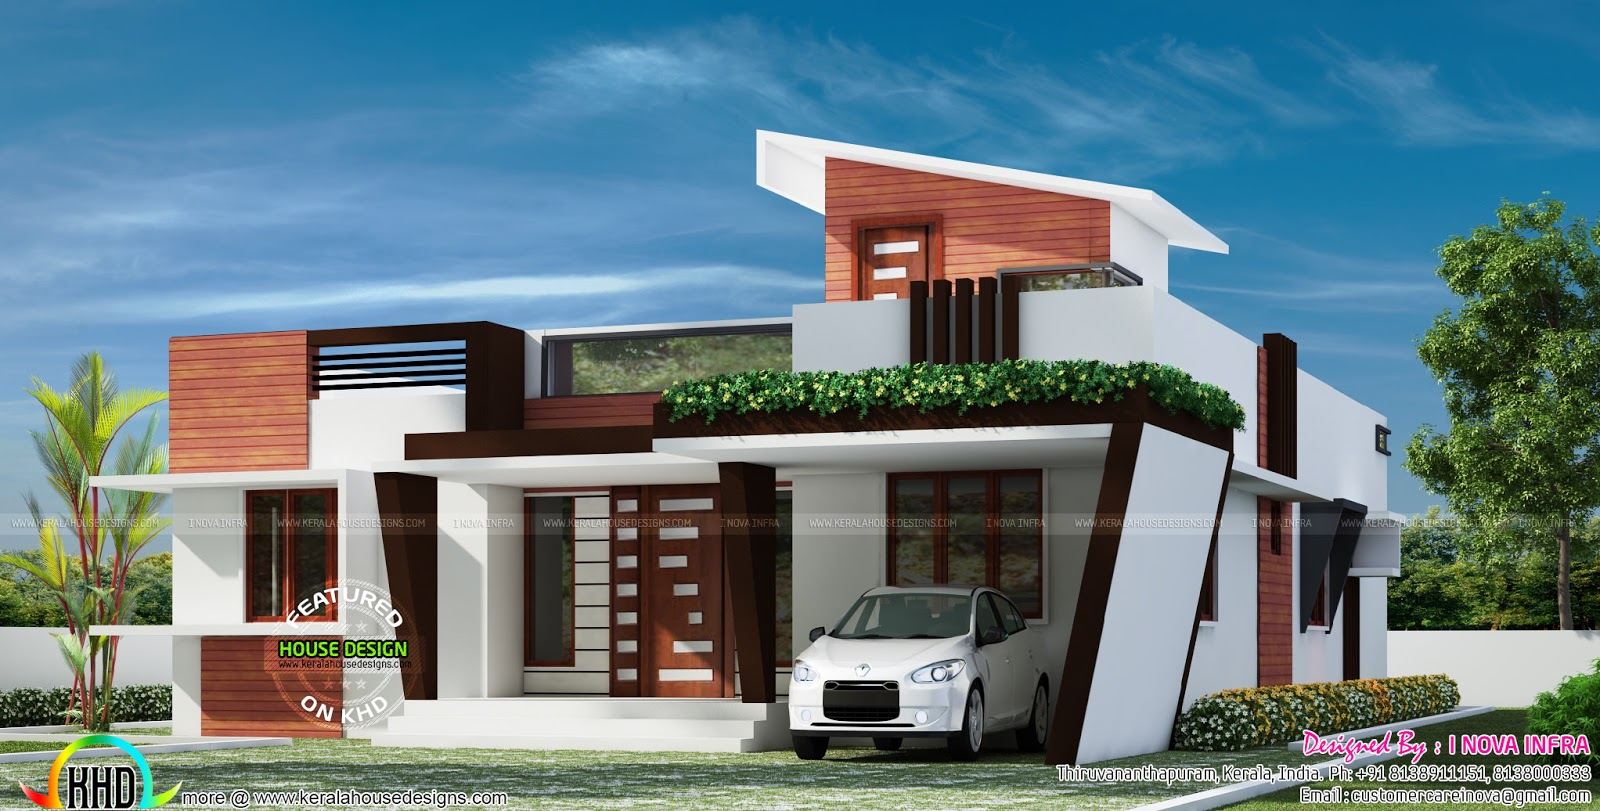 1653 sq ft contemporary one floor house kerala home design and floor plans One floor house plans